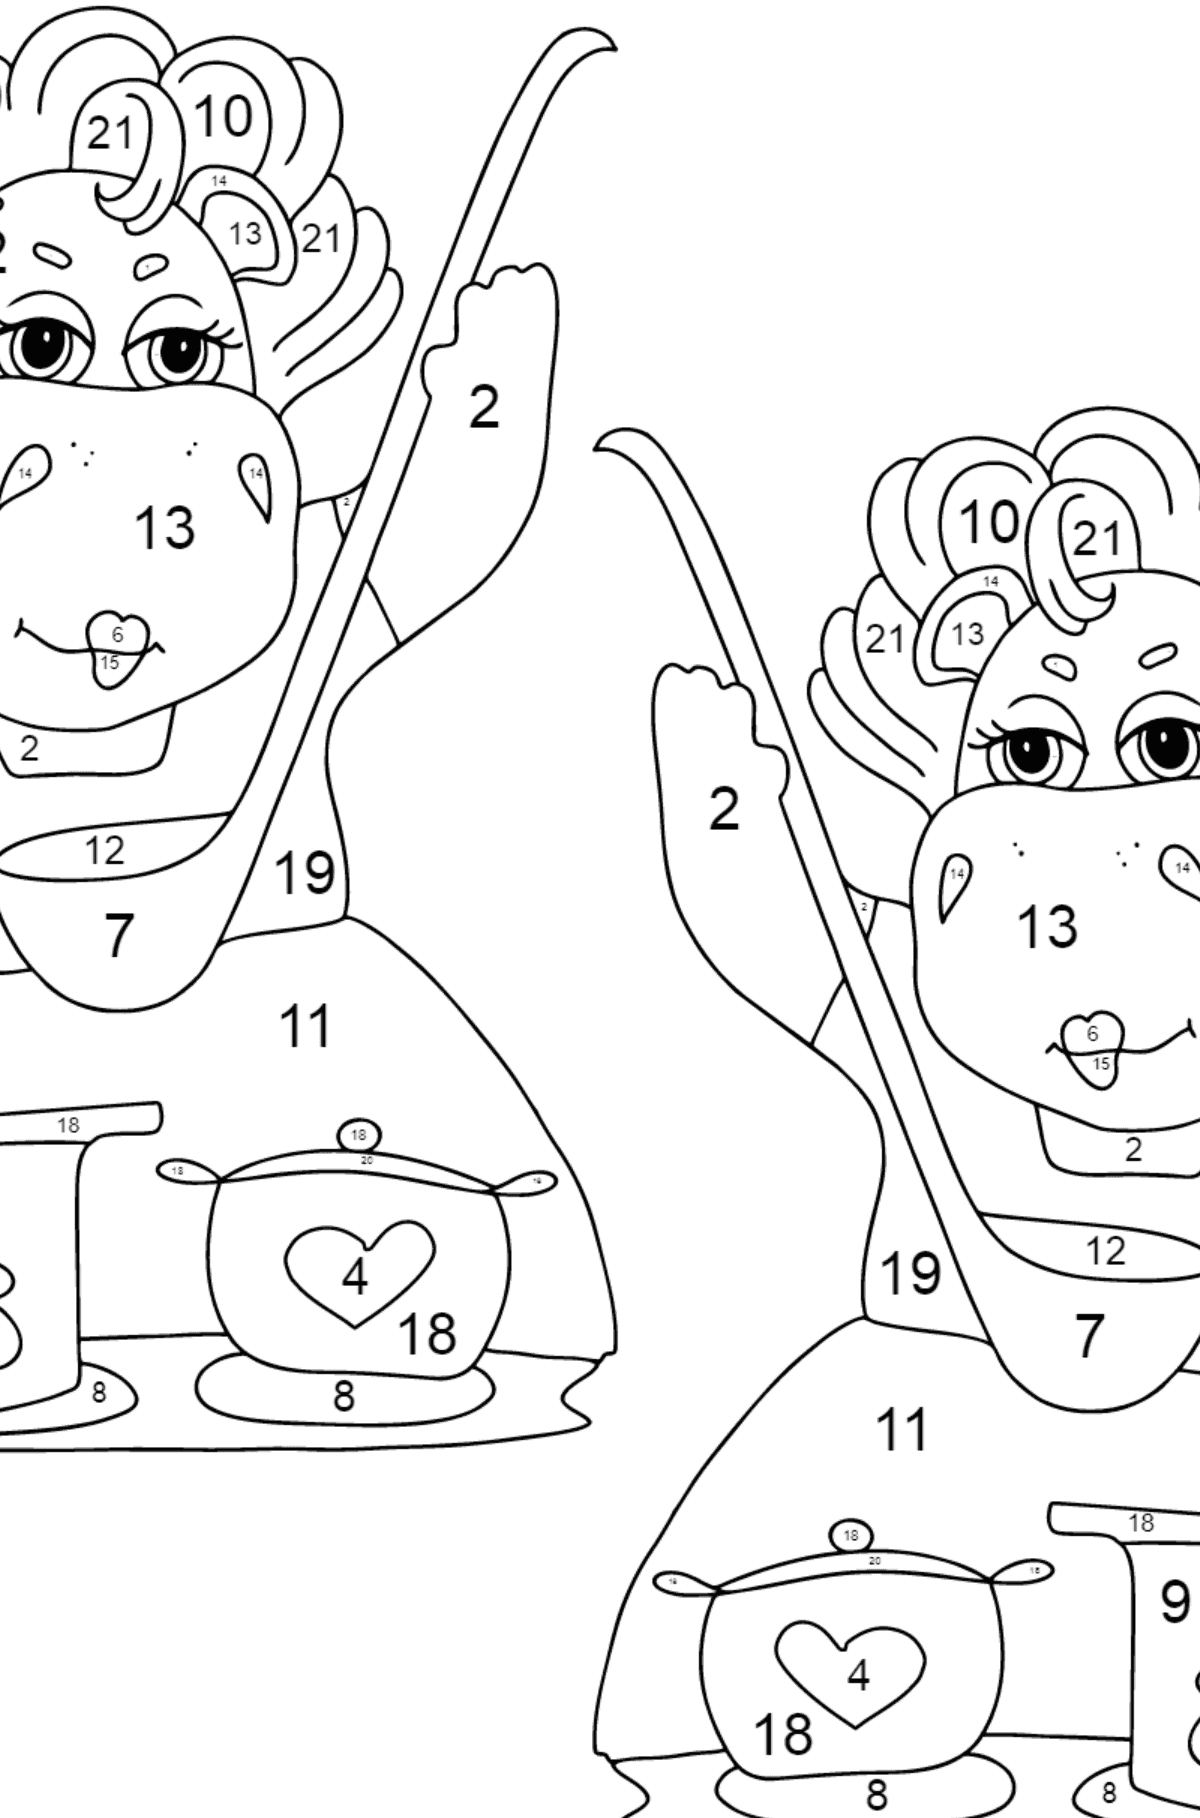 Coloring Page - Hippos are Cooking a Delicious Lunch for Kids  - Color by Number